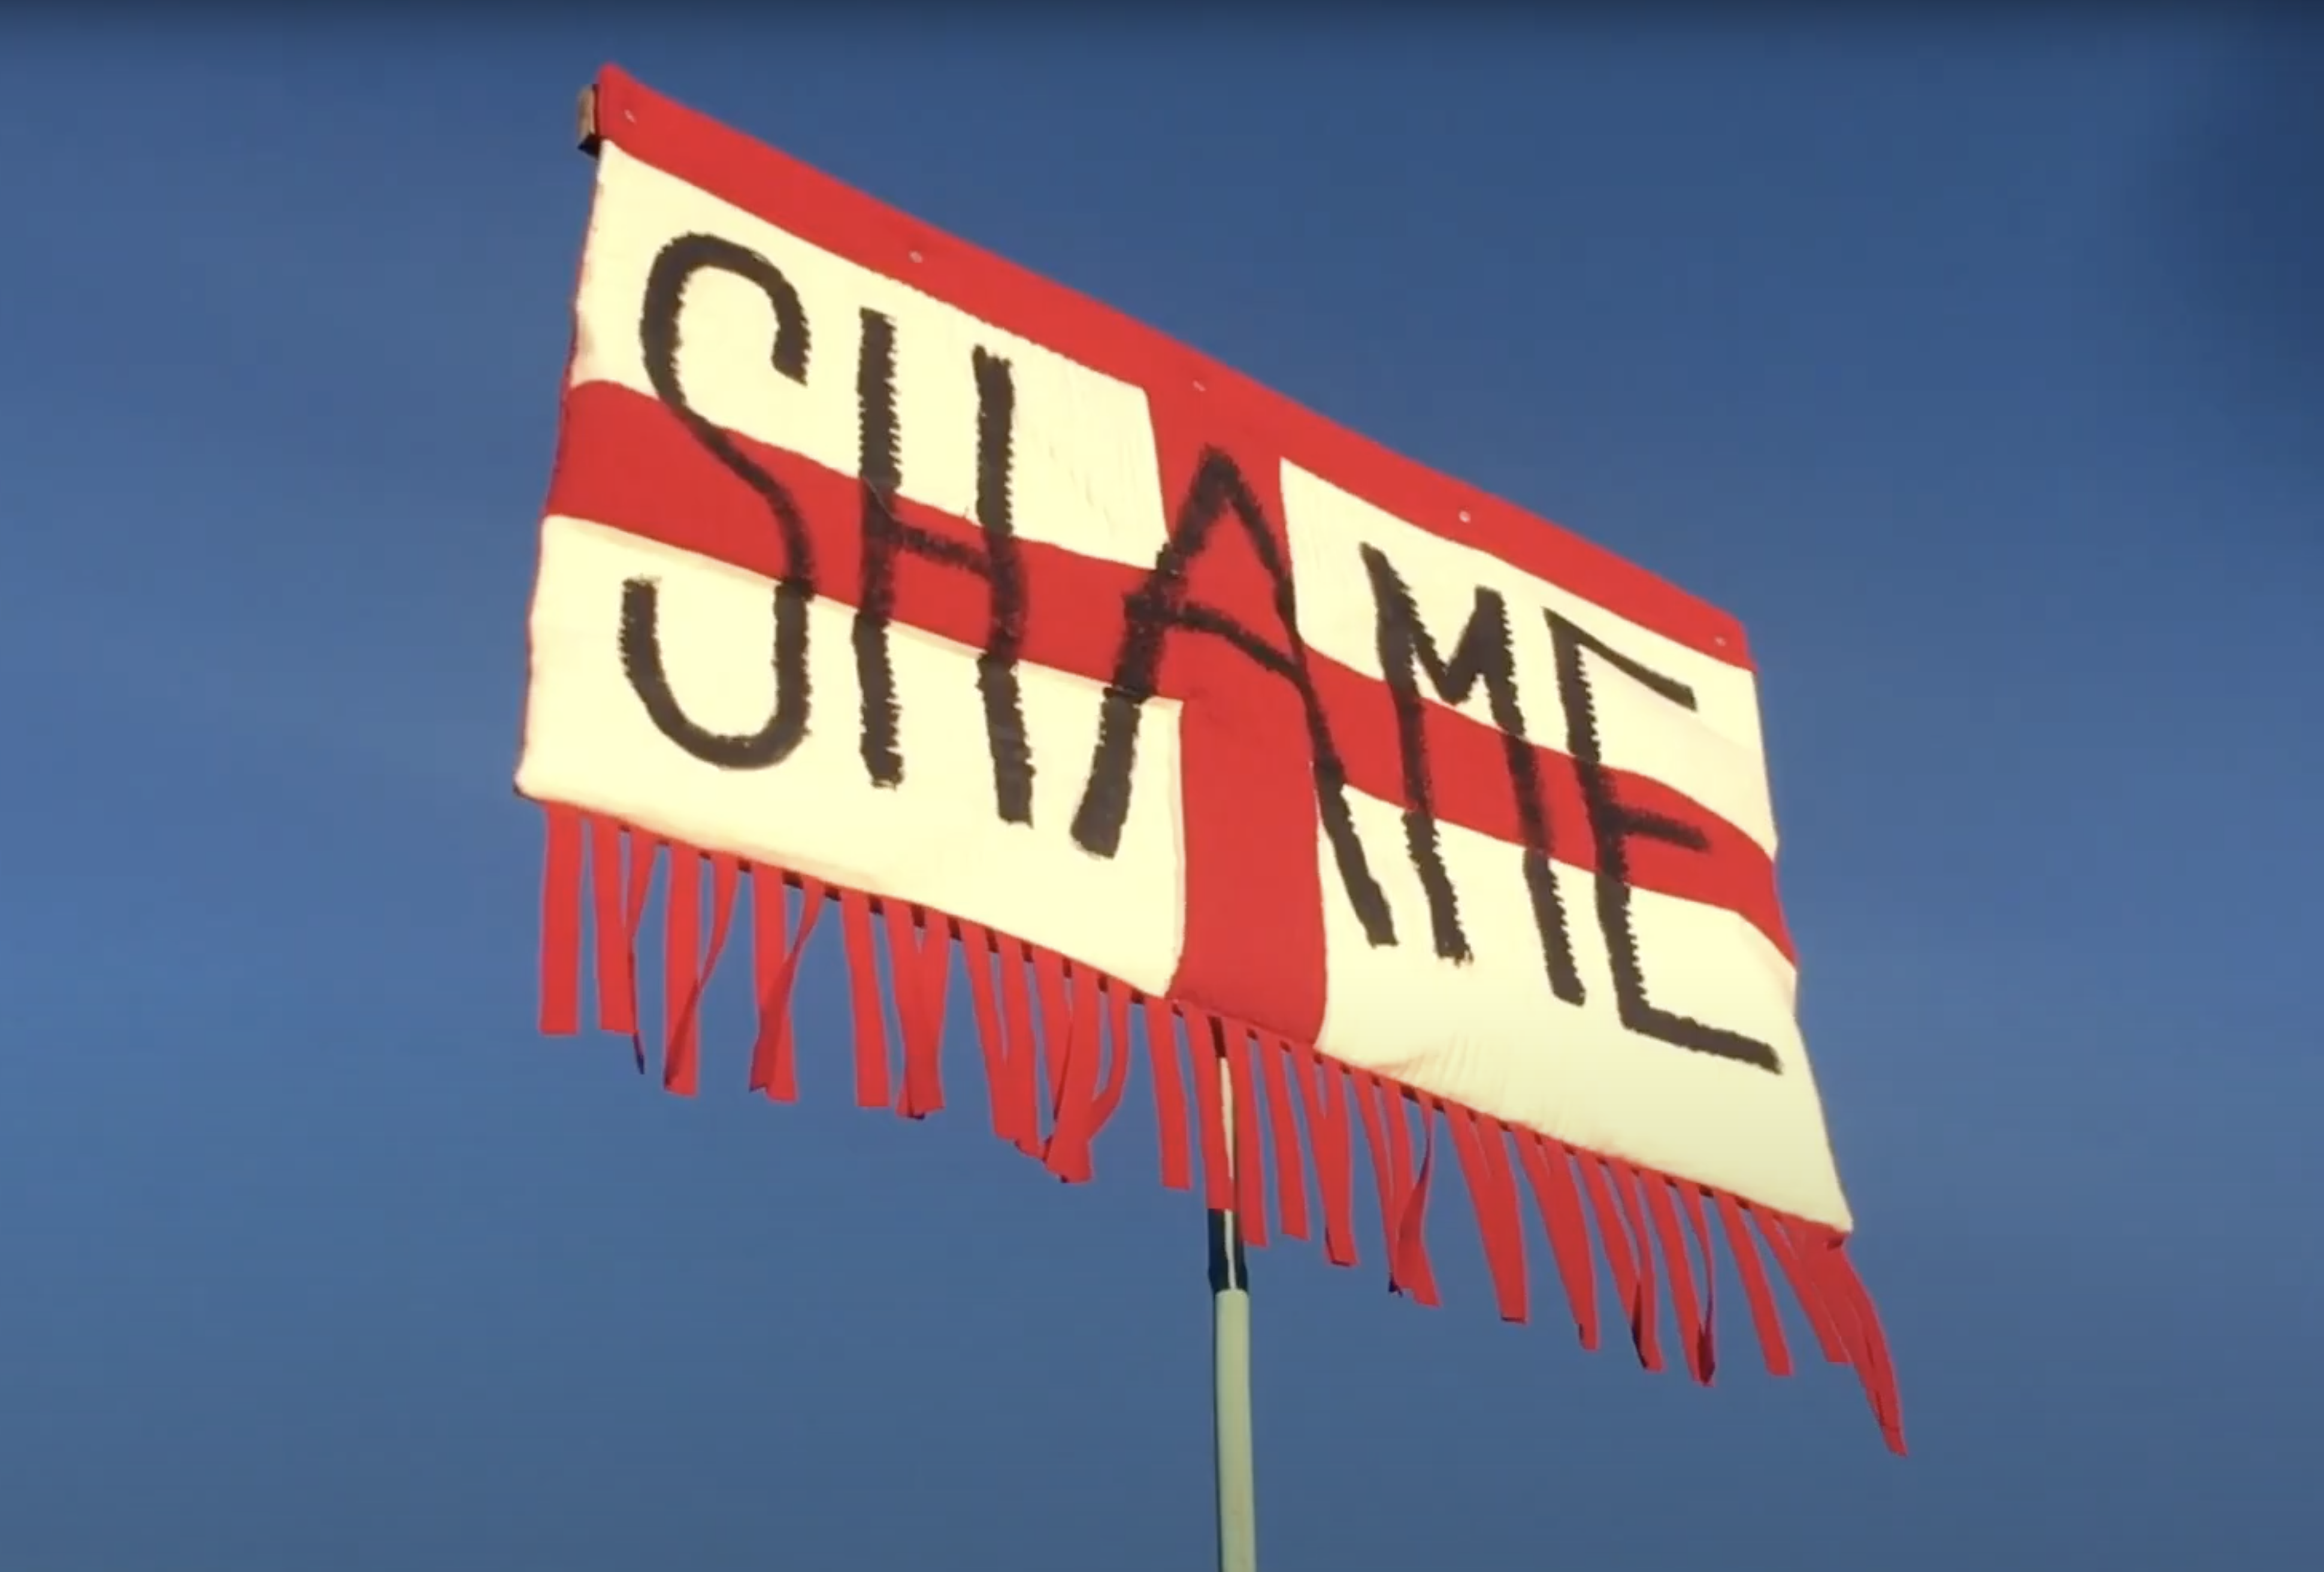 Opening scene of the Central Saint Martins BA Fashion Show 2020 video, featuring a England flag with Shame written on it, by Gus Langford.